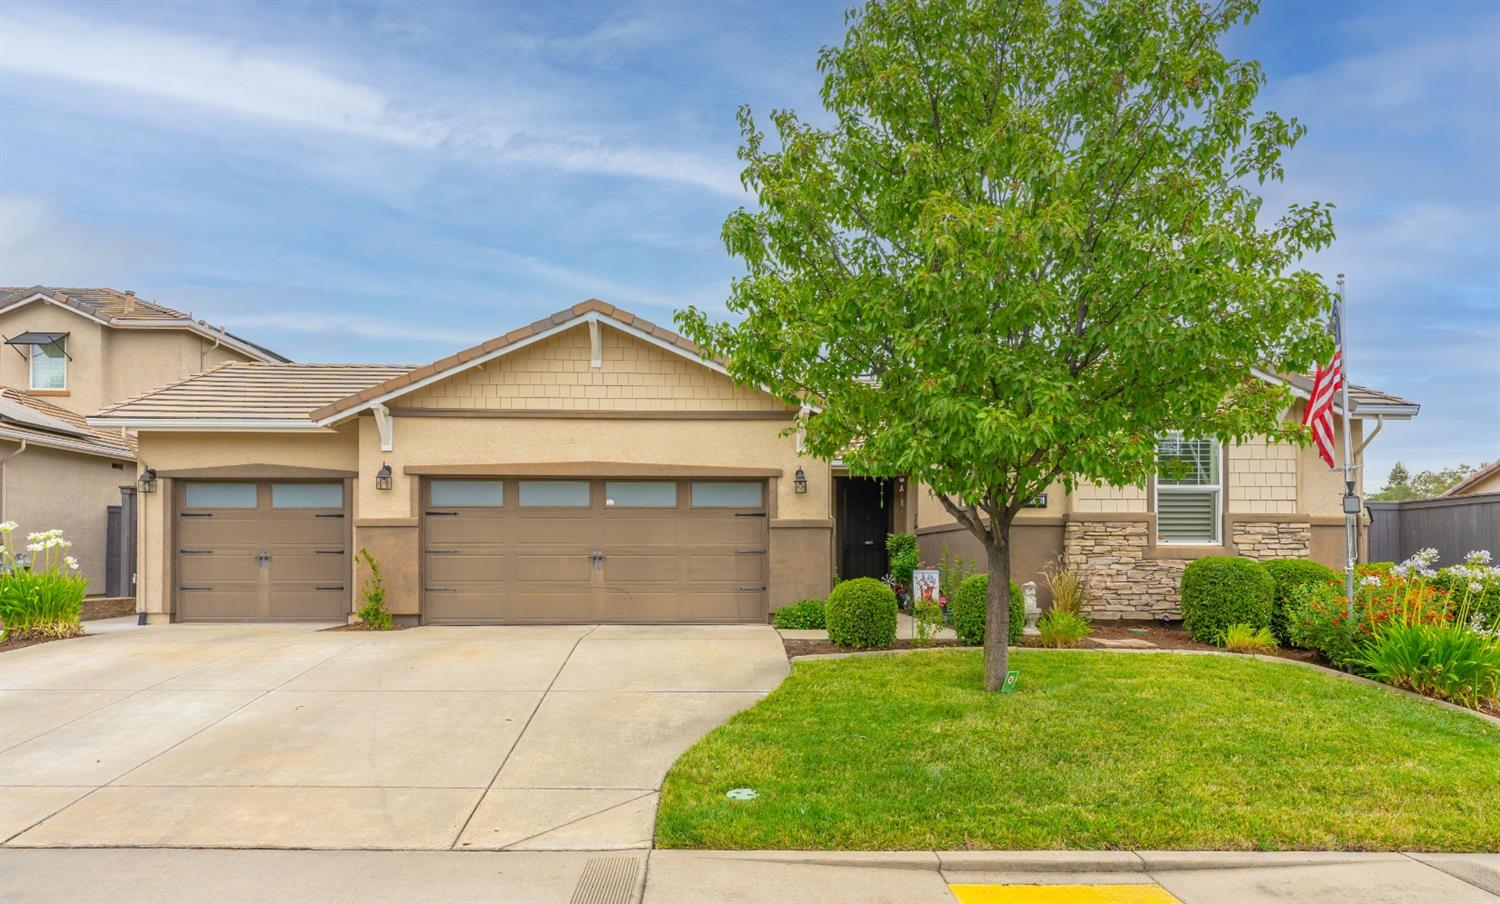 Immaculate home boasts pride of ownership! Instantly fall in love with the neighborhood, open layout, and huge backyard with pool! Interior offers a den (possible 4th bedroom), formal dining, and great room concept! Generous sized living area with custom fireplace and views of the backyard! Gourmet kitchen offers bar seating, granite counters, stainless appliances, gas cooktop, and walk in pantry! Owners suite is complete with dual sinks, tub, shower, and walk in closet! Entertainer's dream backyard with covered patio, sparkling pool, lush lawn, and mature landscape!! Smart home features include wifi light switches, thermostat, and sprinklers!! Highly sought after Orangevale location with close proximity to Lake Natoma, trails, shopping, and dining! Welcome Home!!